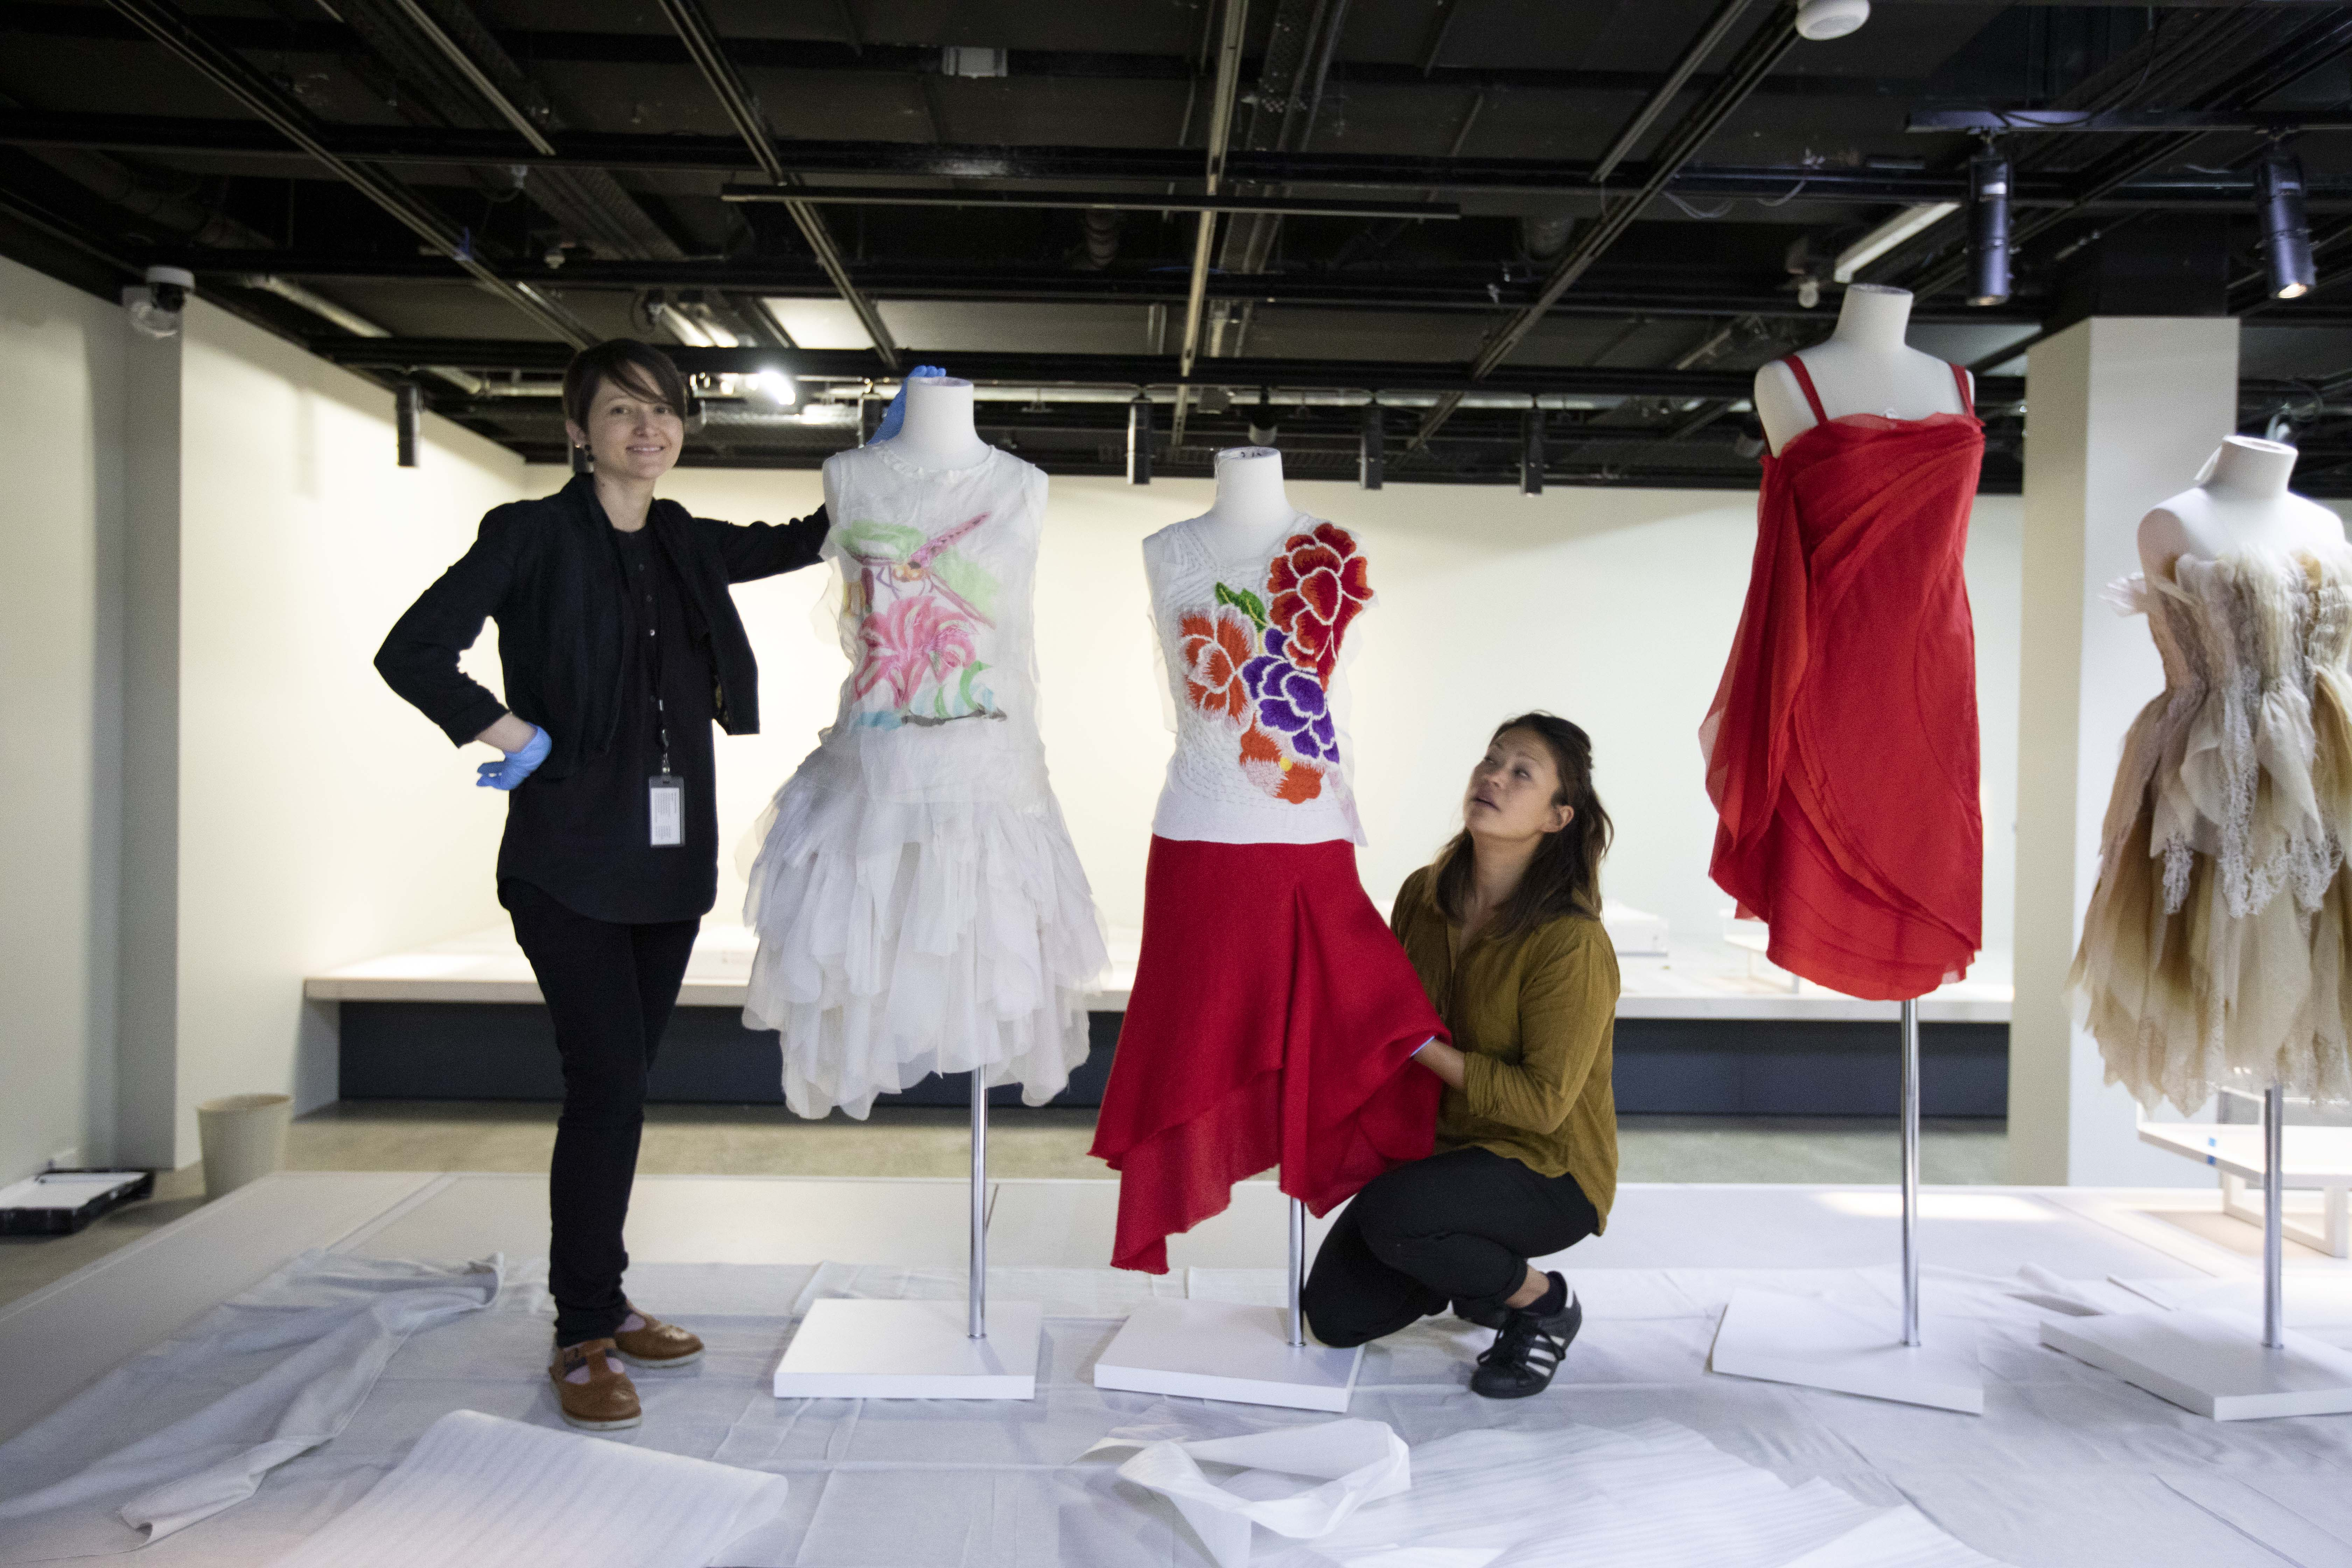 Two women in the process of placing the clothed dress forms into position on the display plinths.